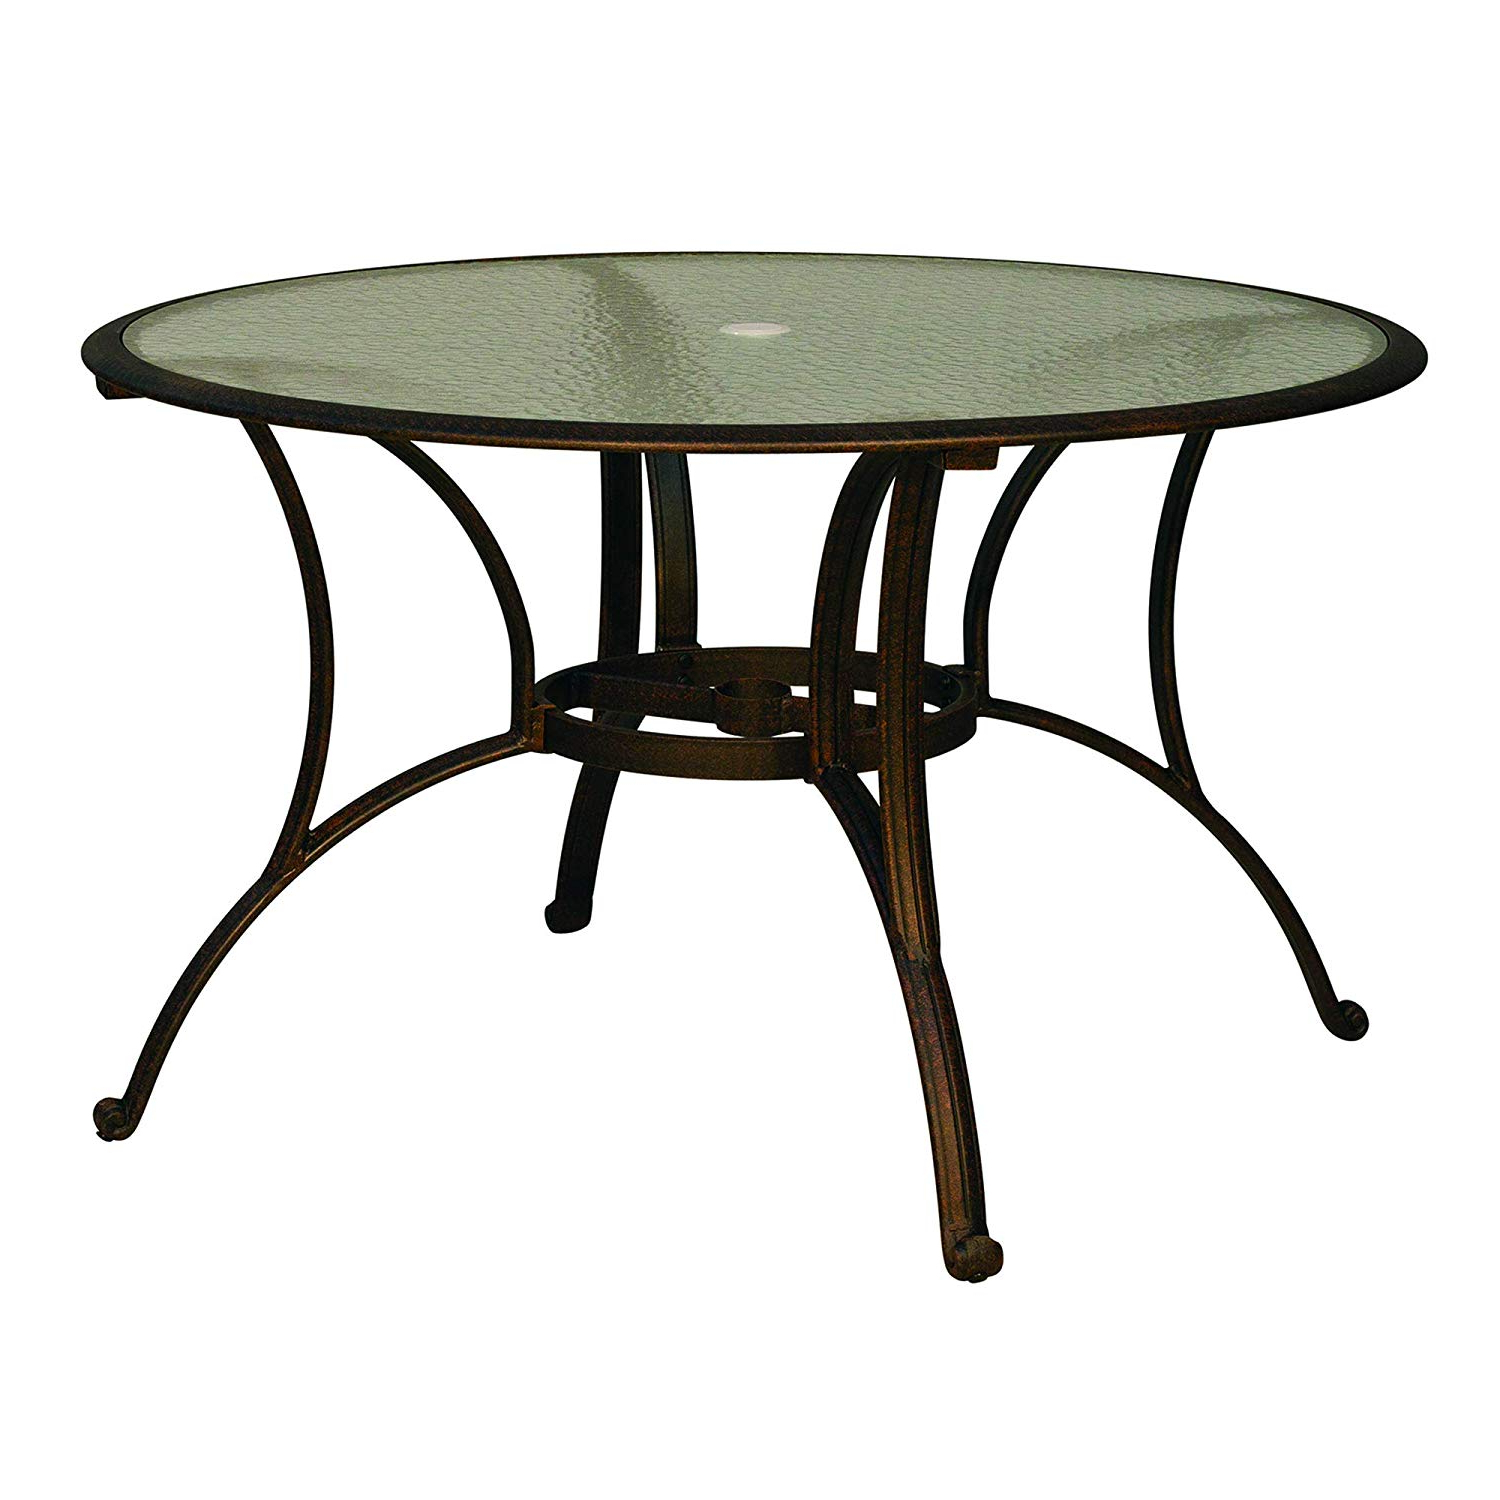 Round Dining Tables With Glass Top Regarding 2018 Amazon: Cloud Mountain Outdoor Bisrto Table Patio Table (View 20 of 30)